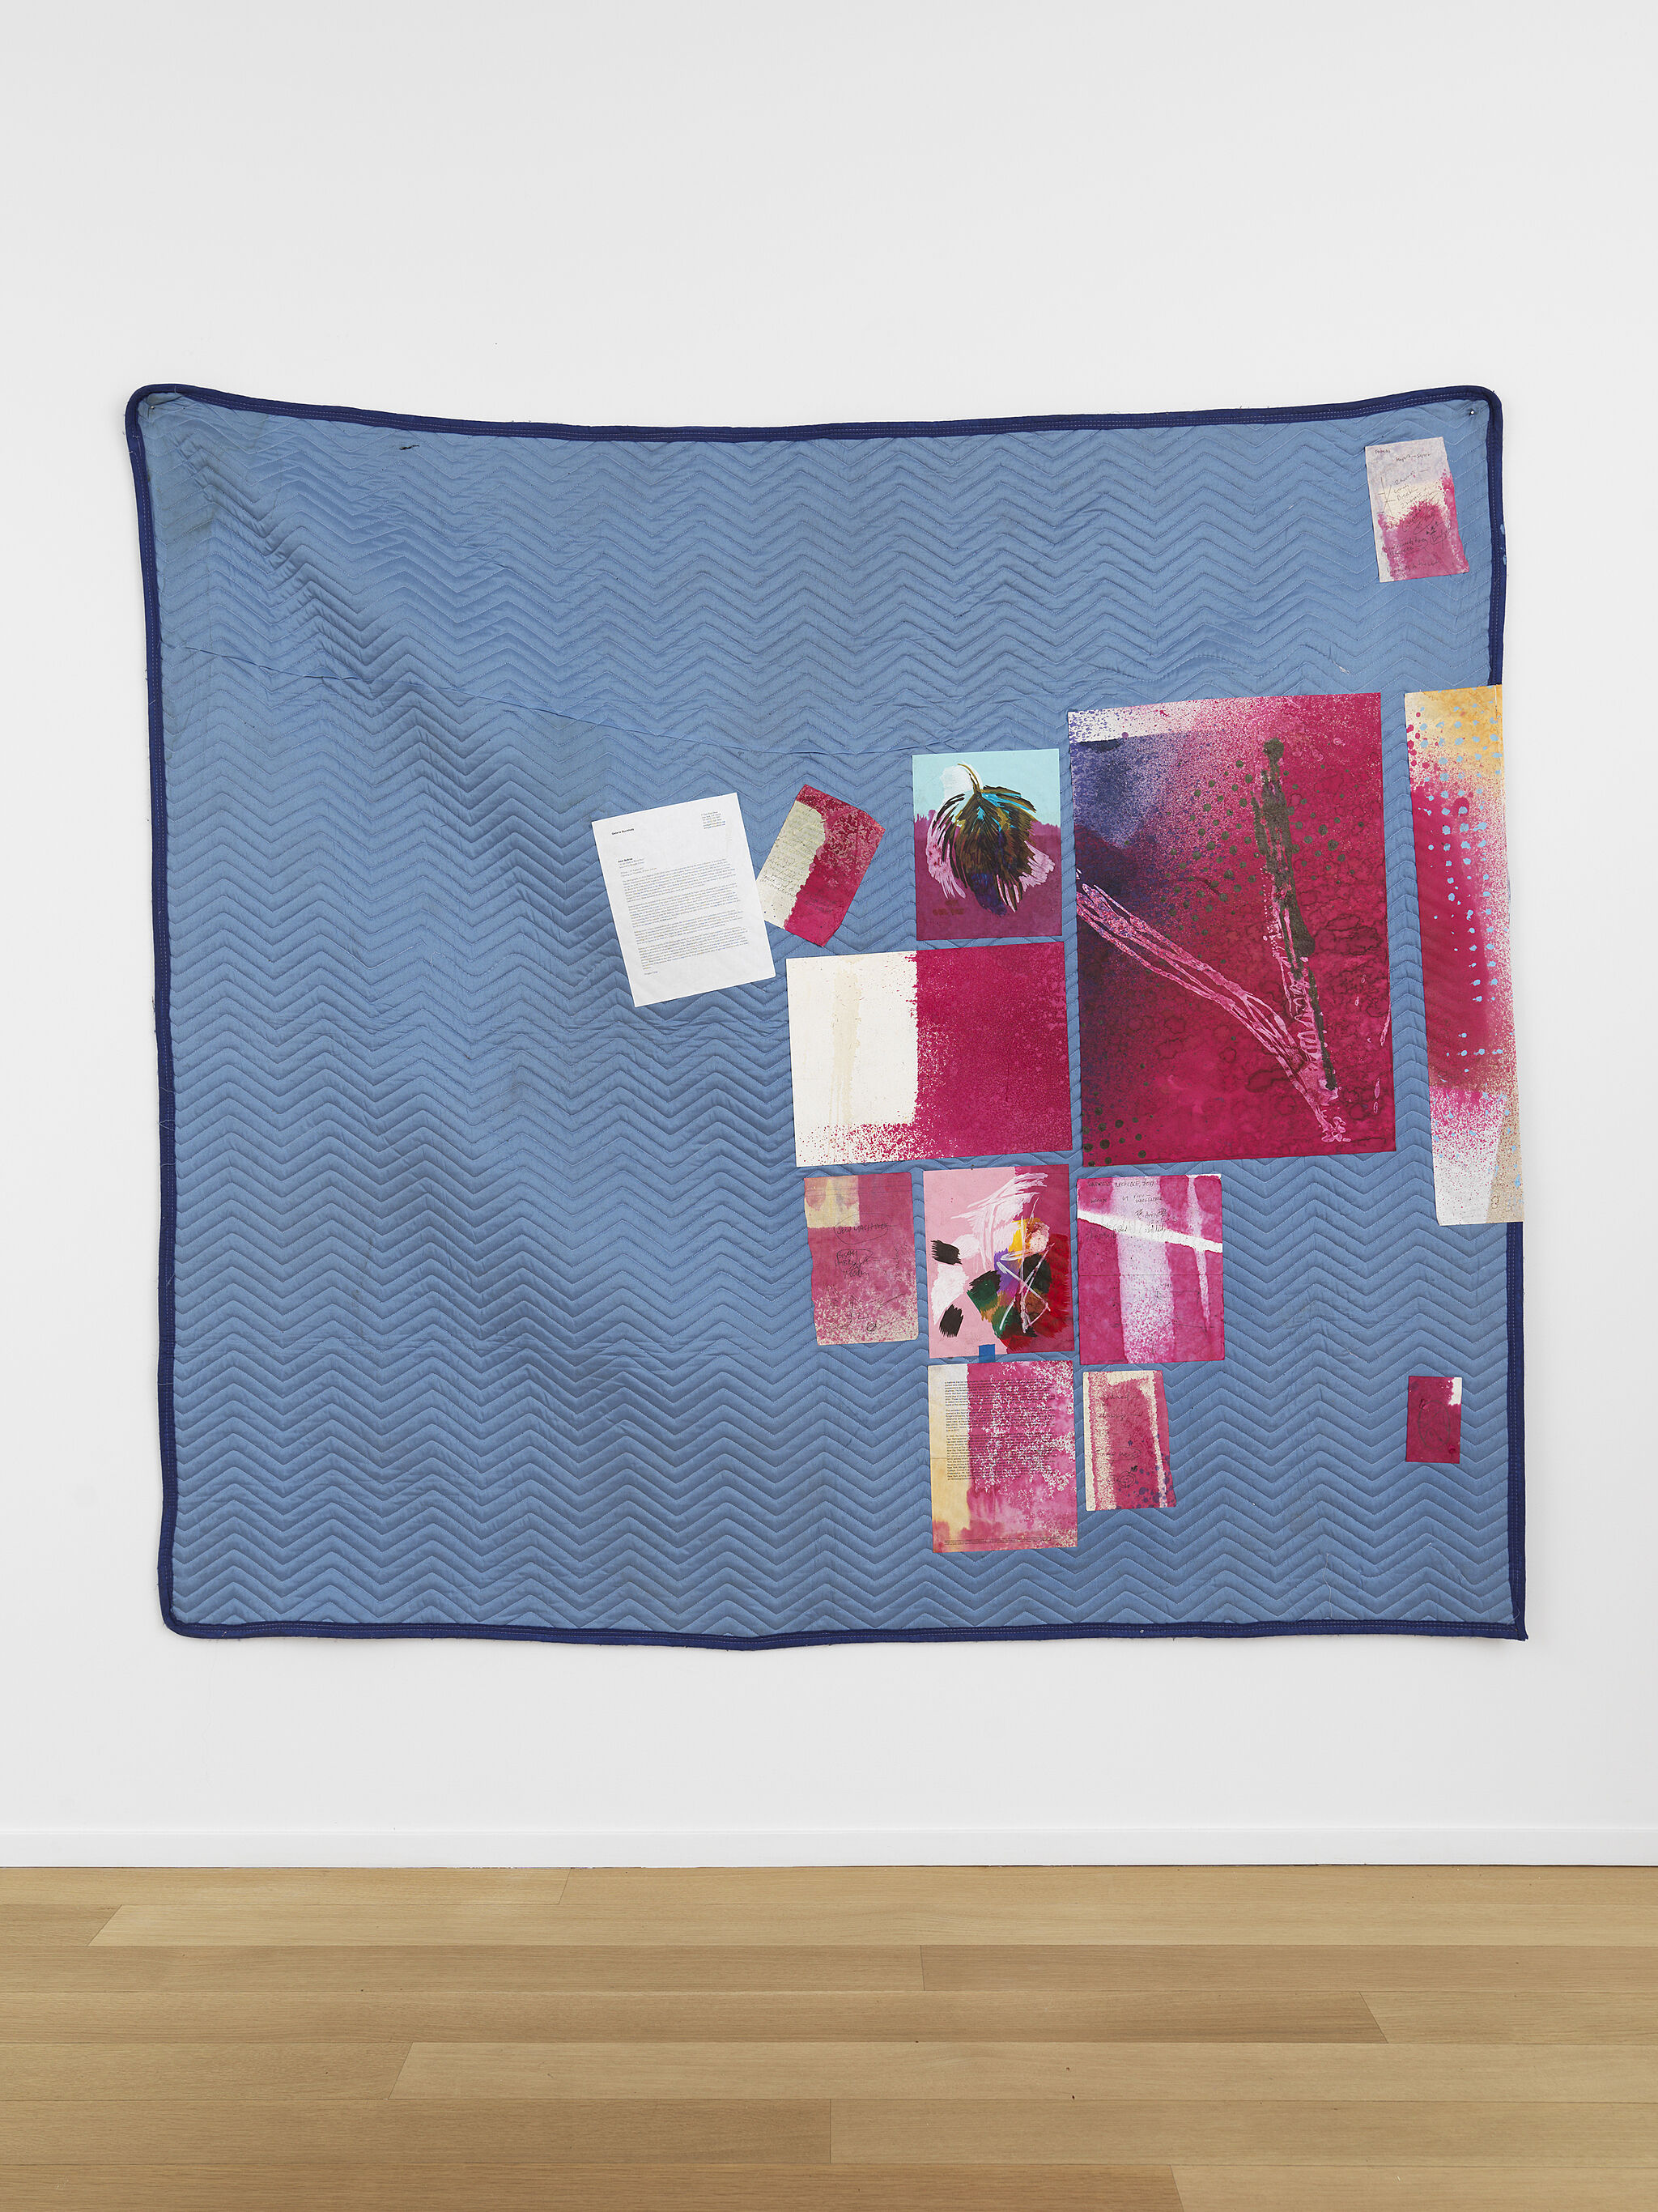 A moving blanket hanging on a wall with paper works attached.